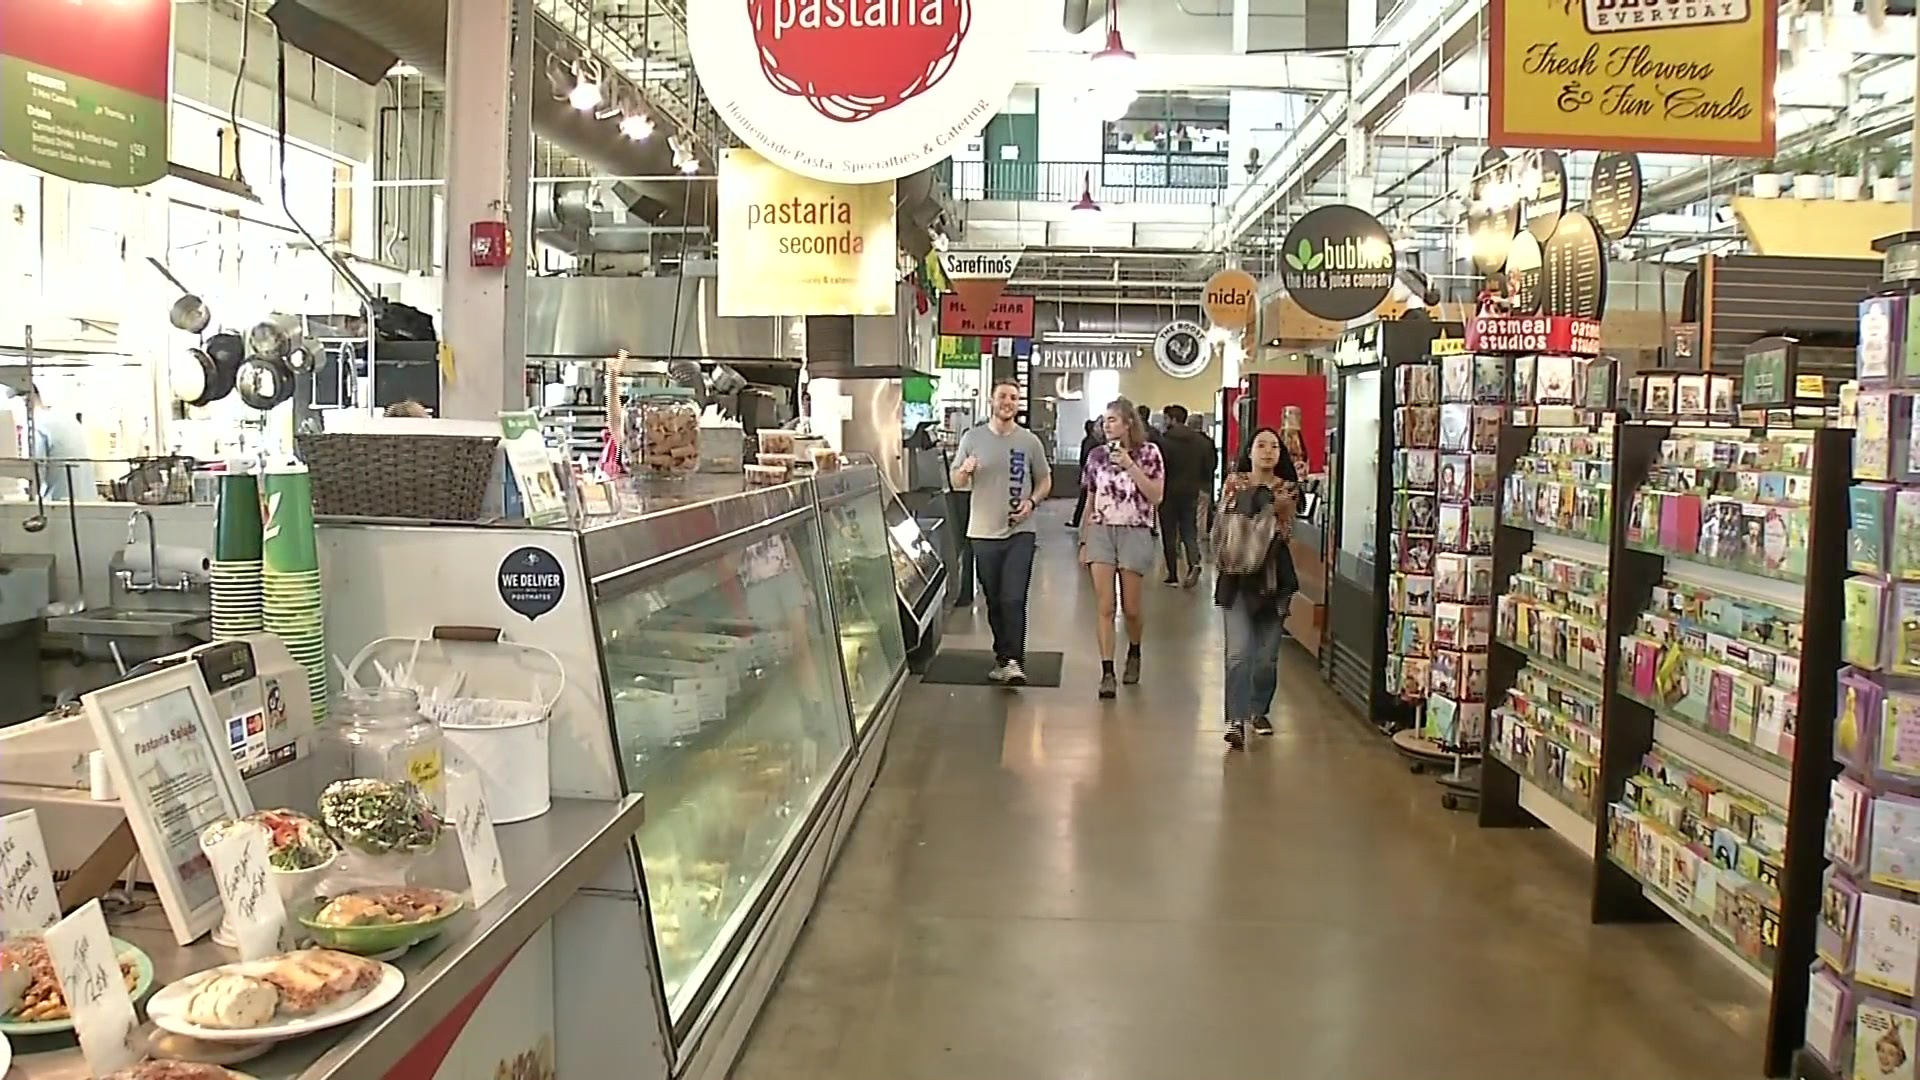 North Market to open second location in 2020